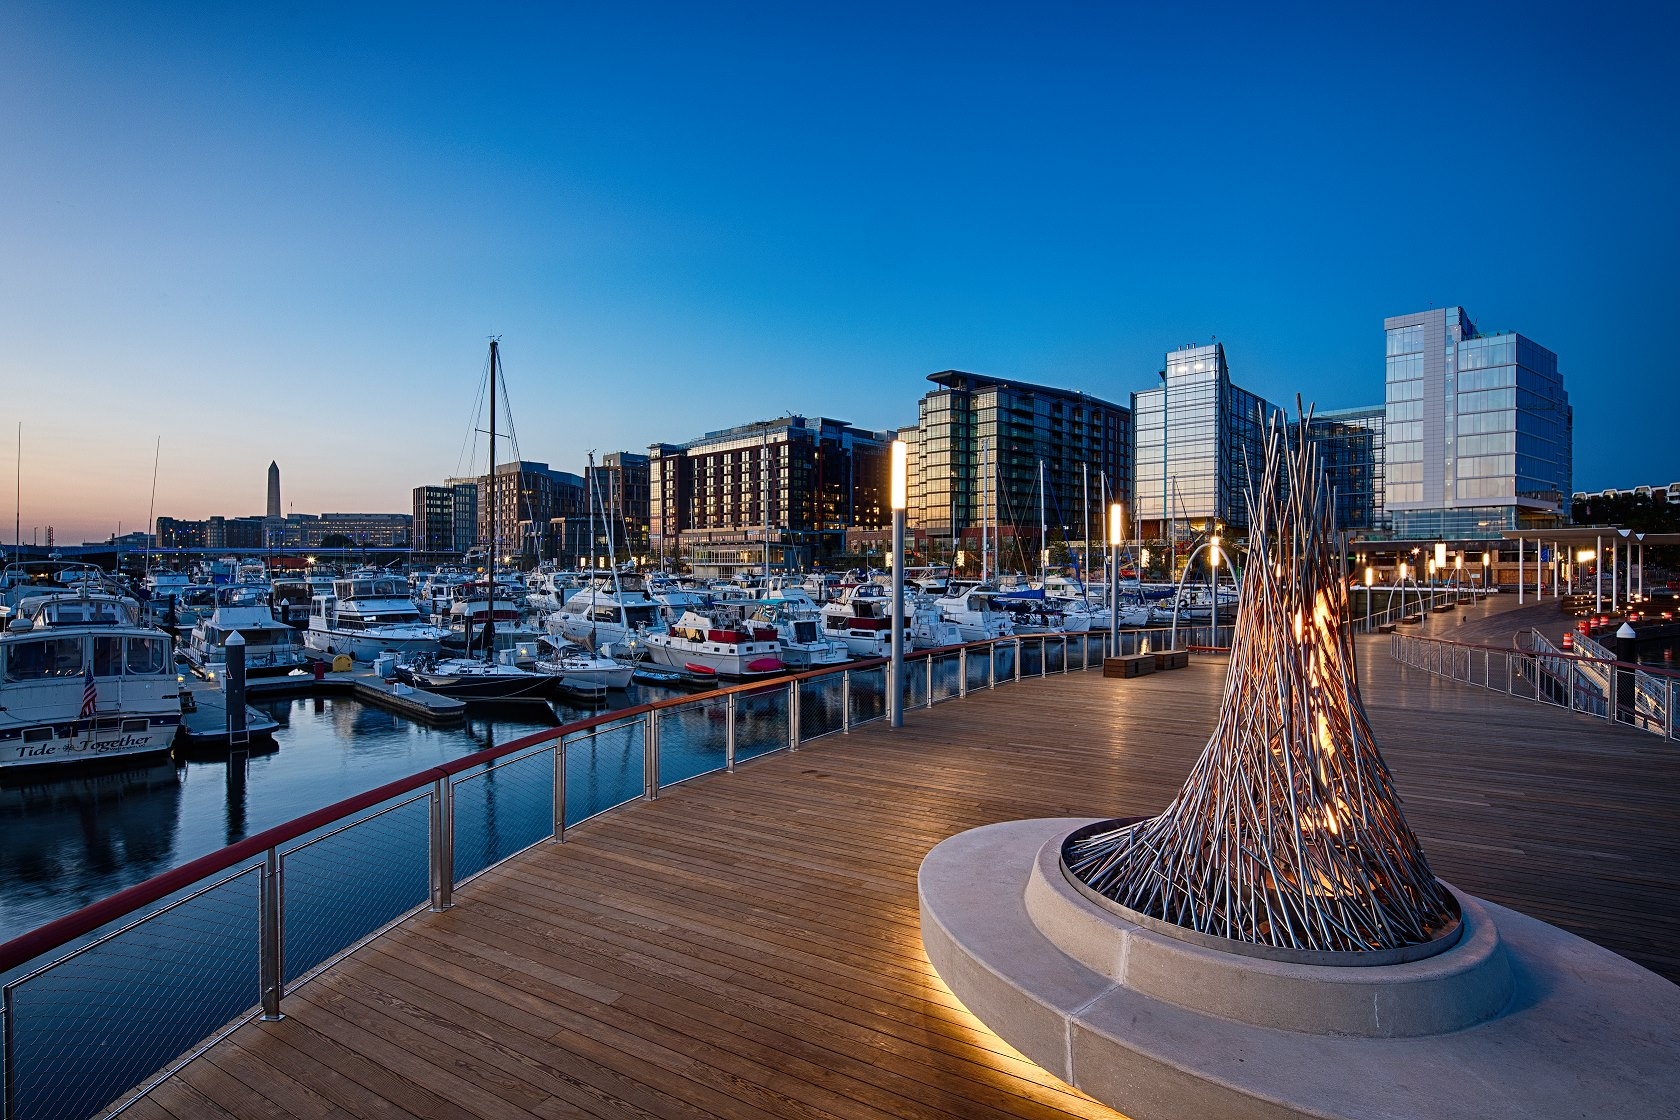 The Wharf Marina | 2019 top destinations | Snag-A-Slip